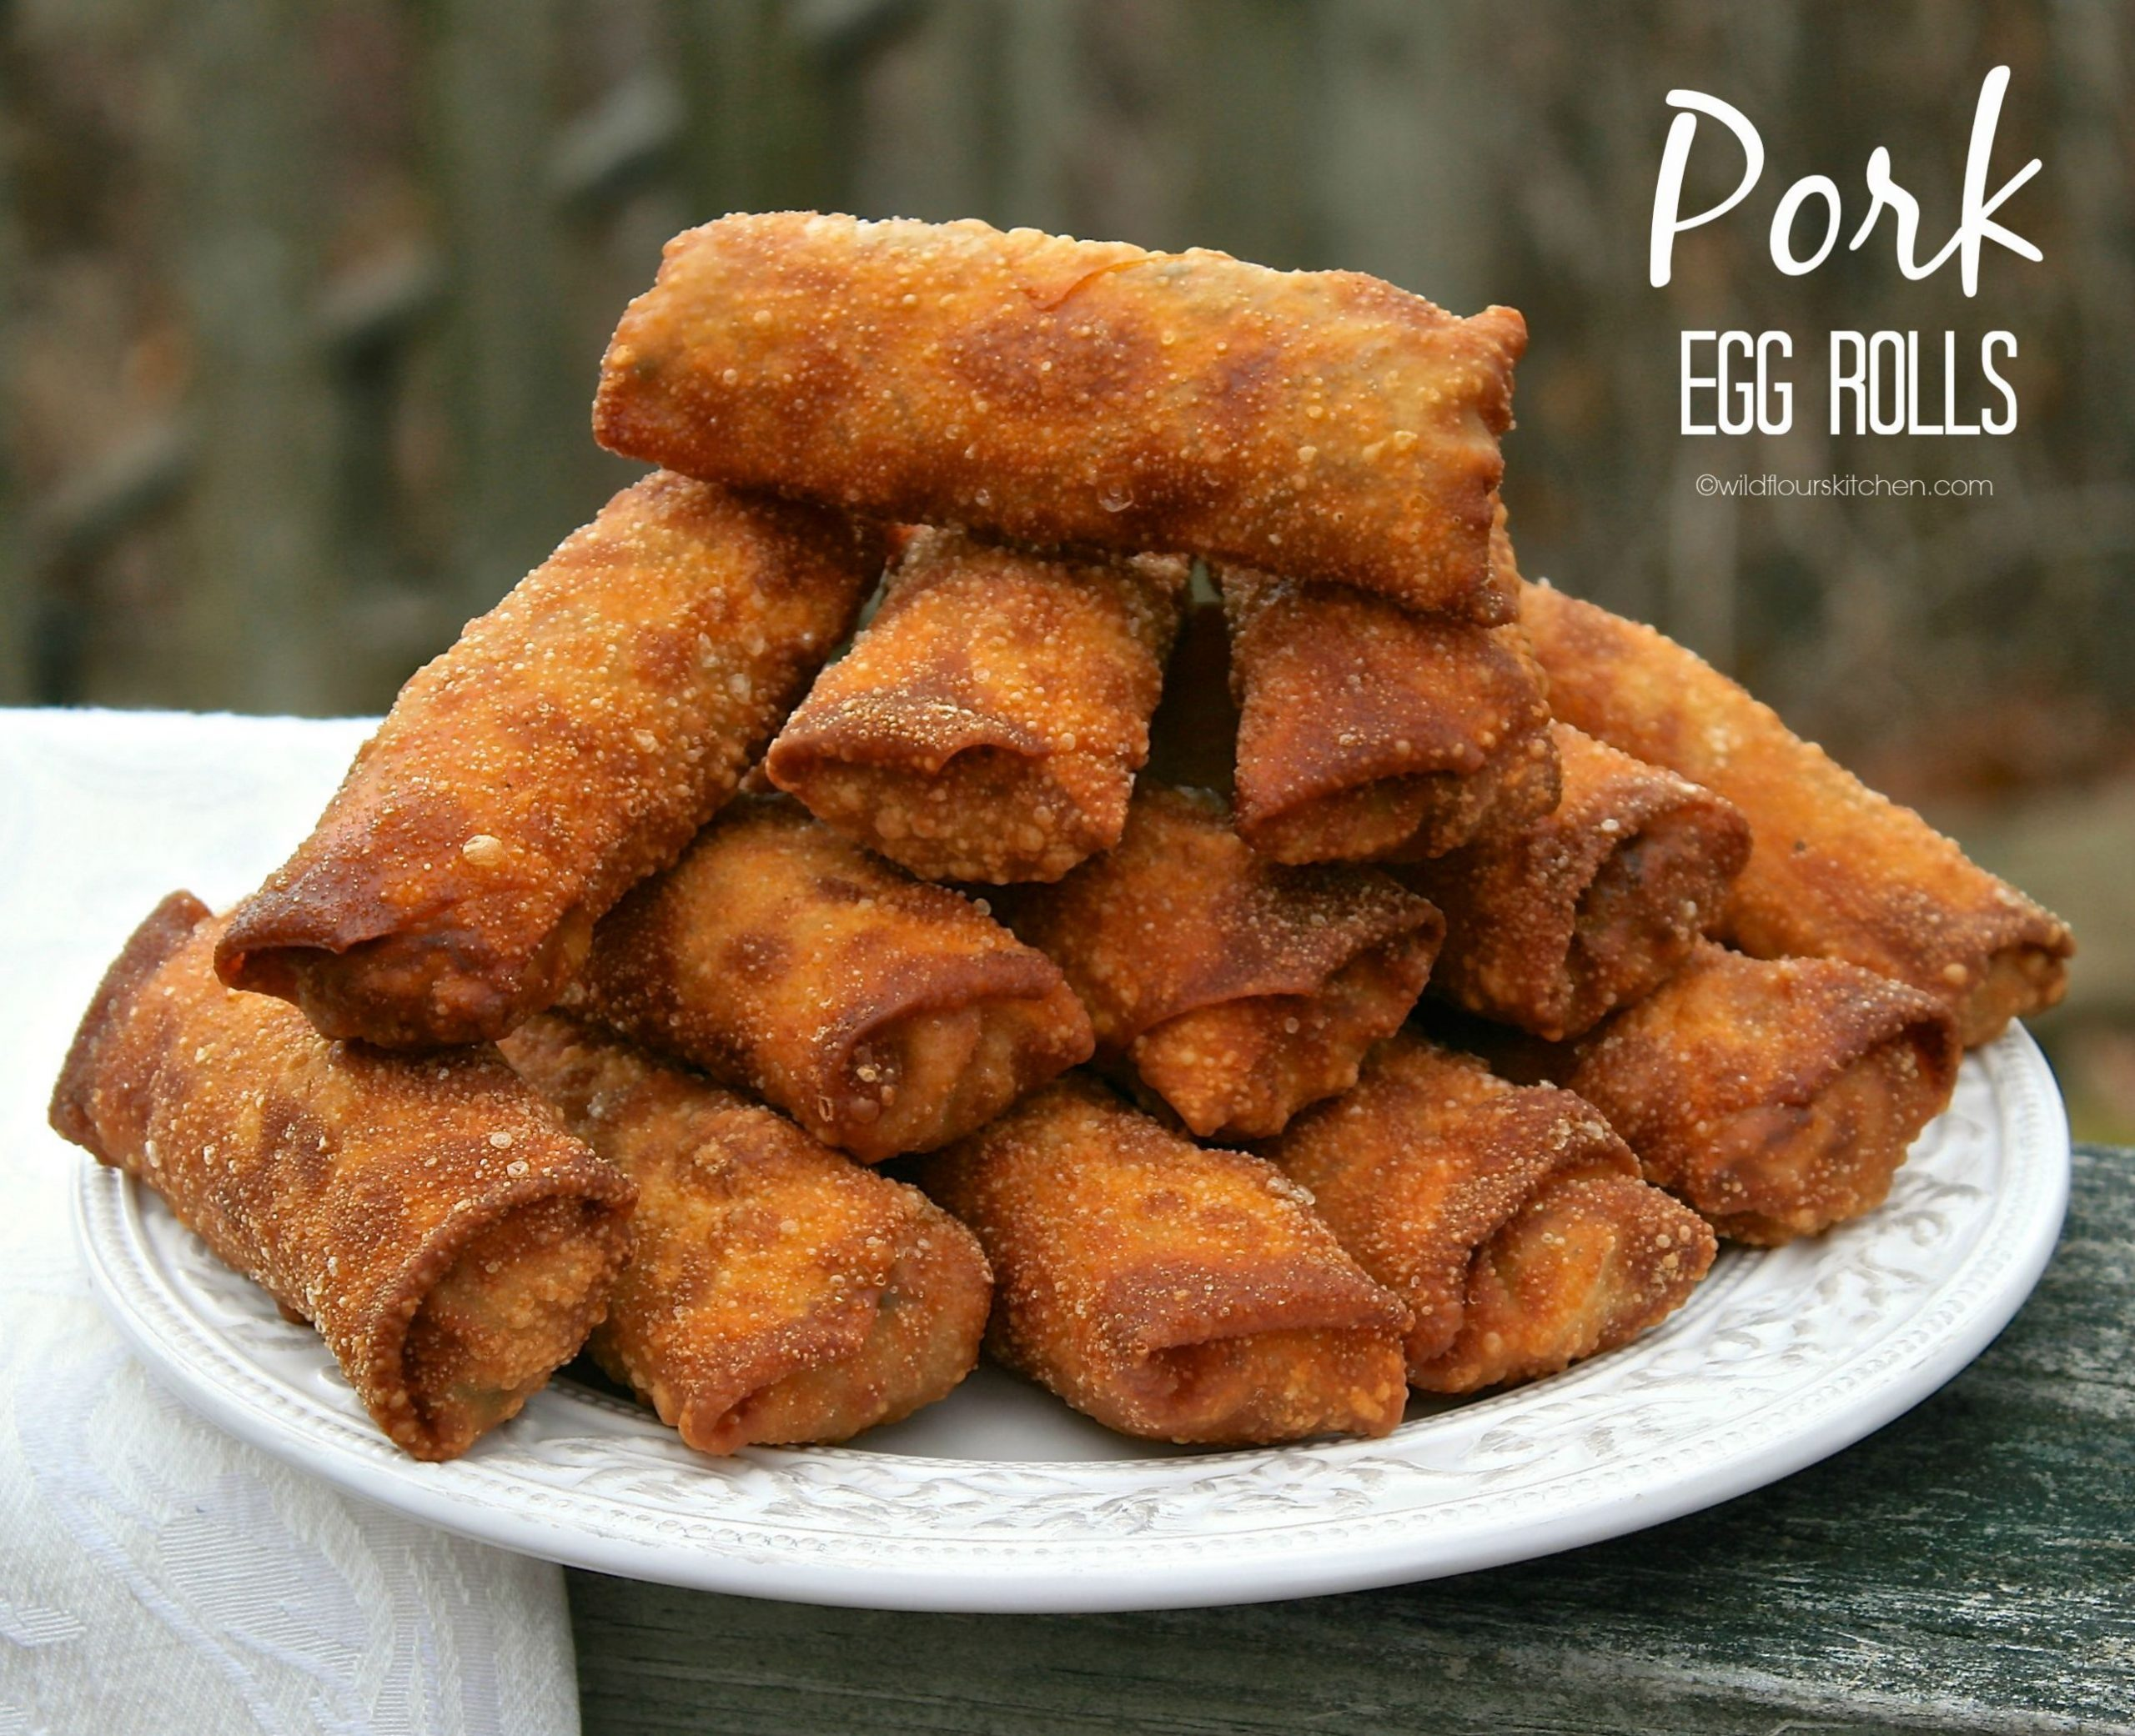 Take-Out Style Authentic Pork Egg Rolls